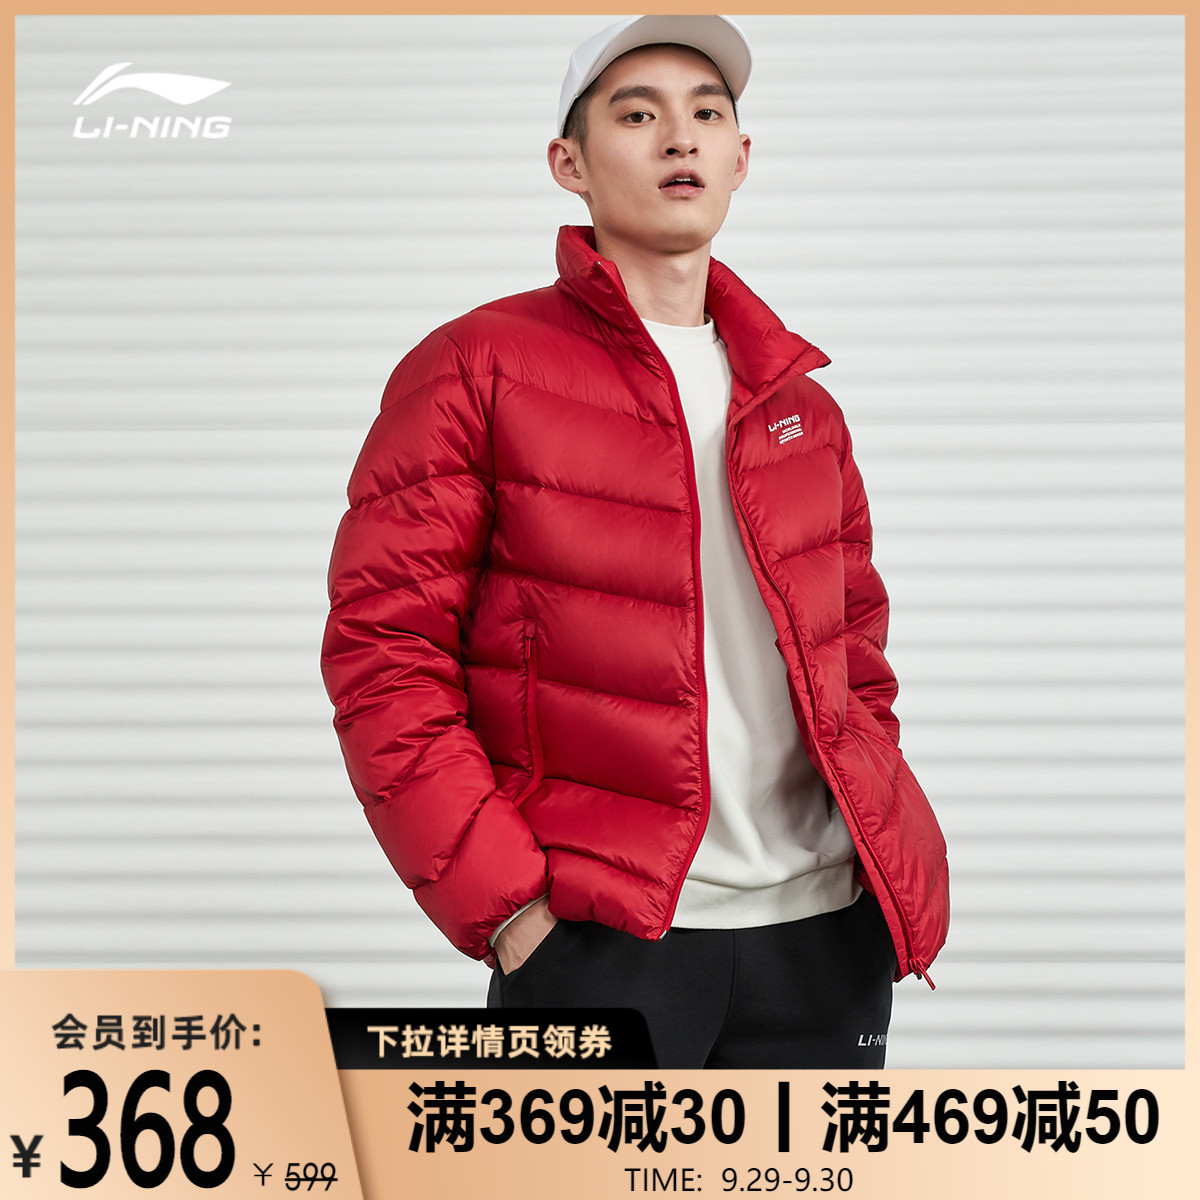 Li Ning short down jacket men's official 2020 new training warm winter thickened stand-up collar men's sportswear